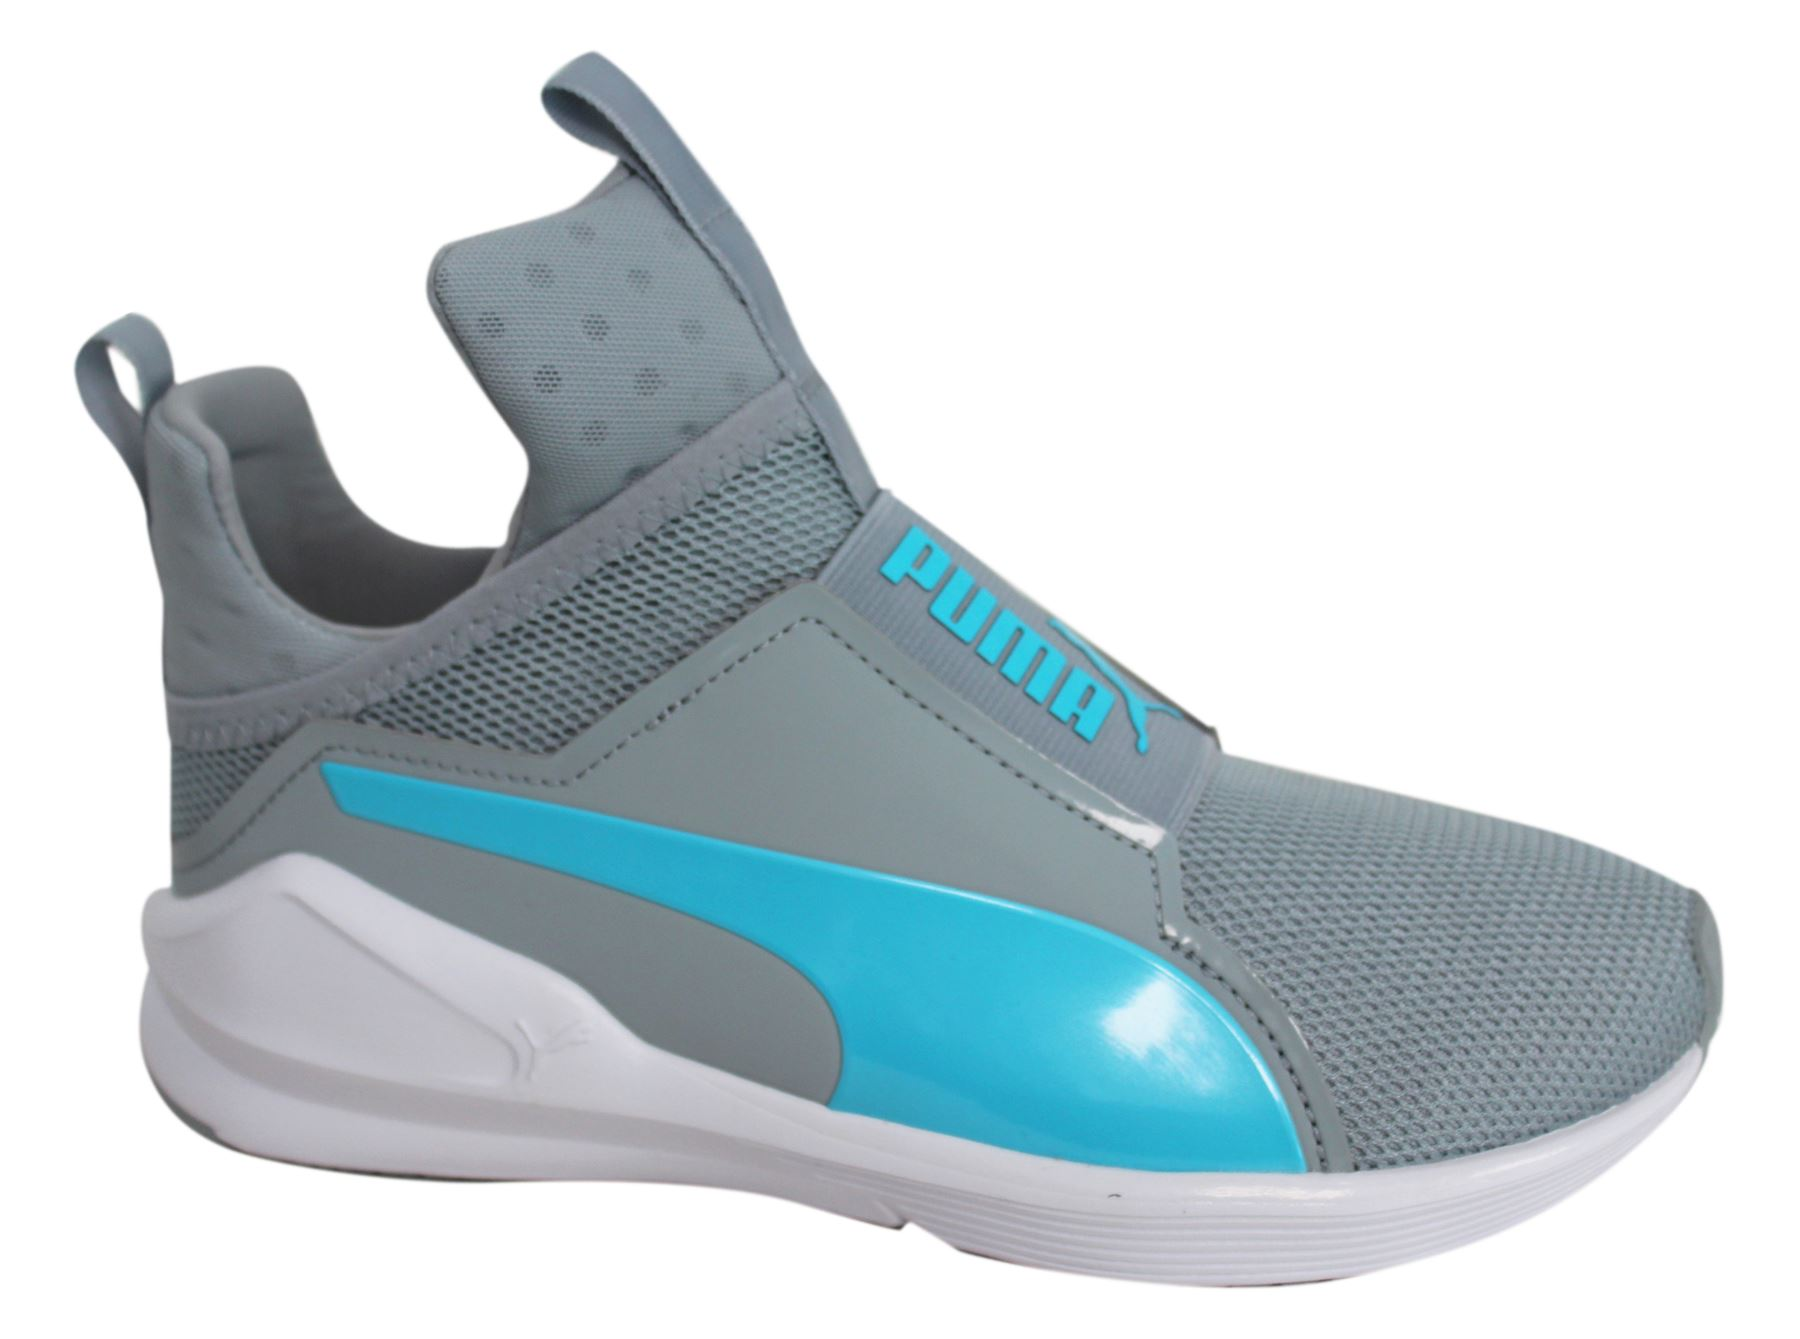 finest selection 9b860 5b7dd Details about Puma Fierce Core Slip On Grey Blue Womens Mesh Dance Trainers  188977 09 M13